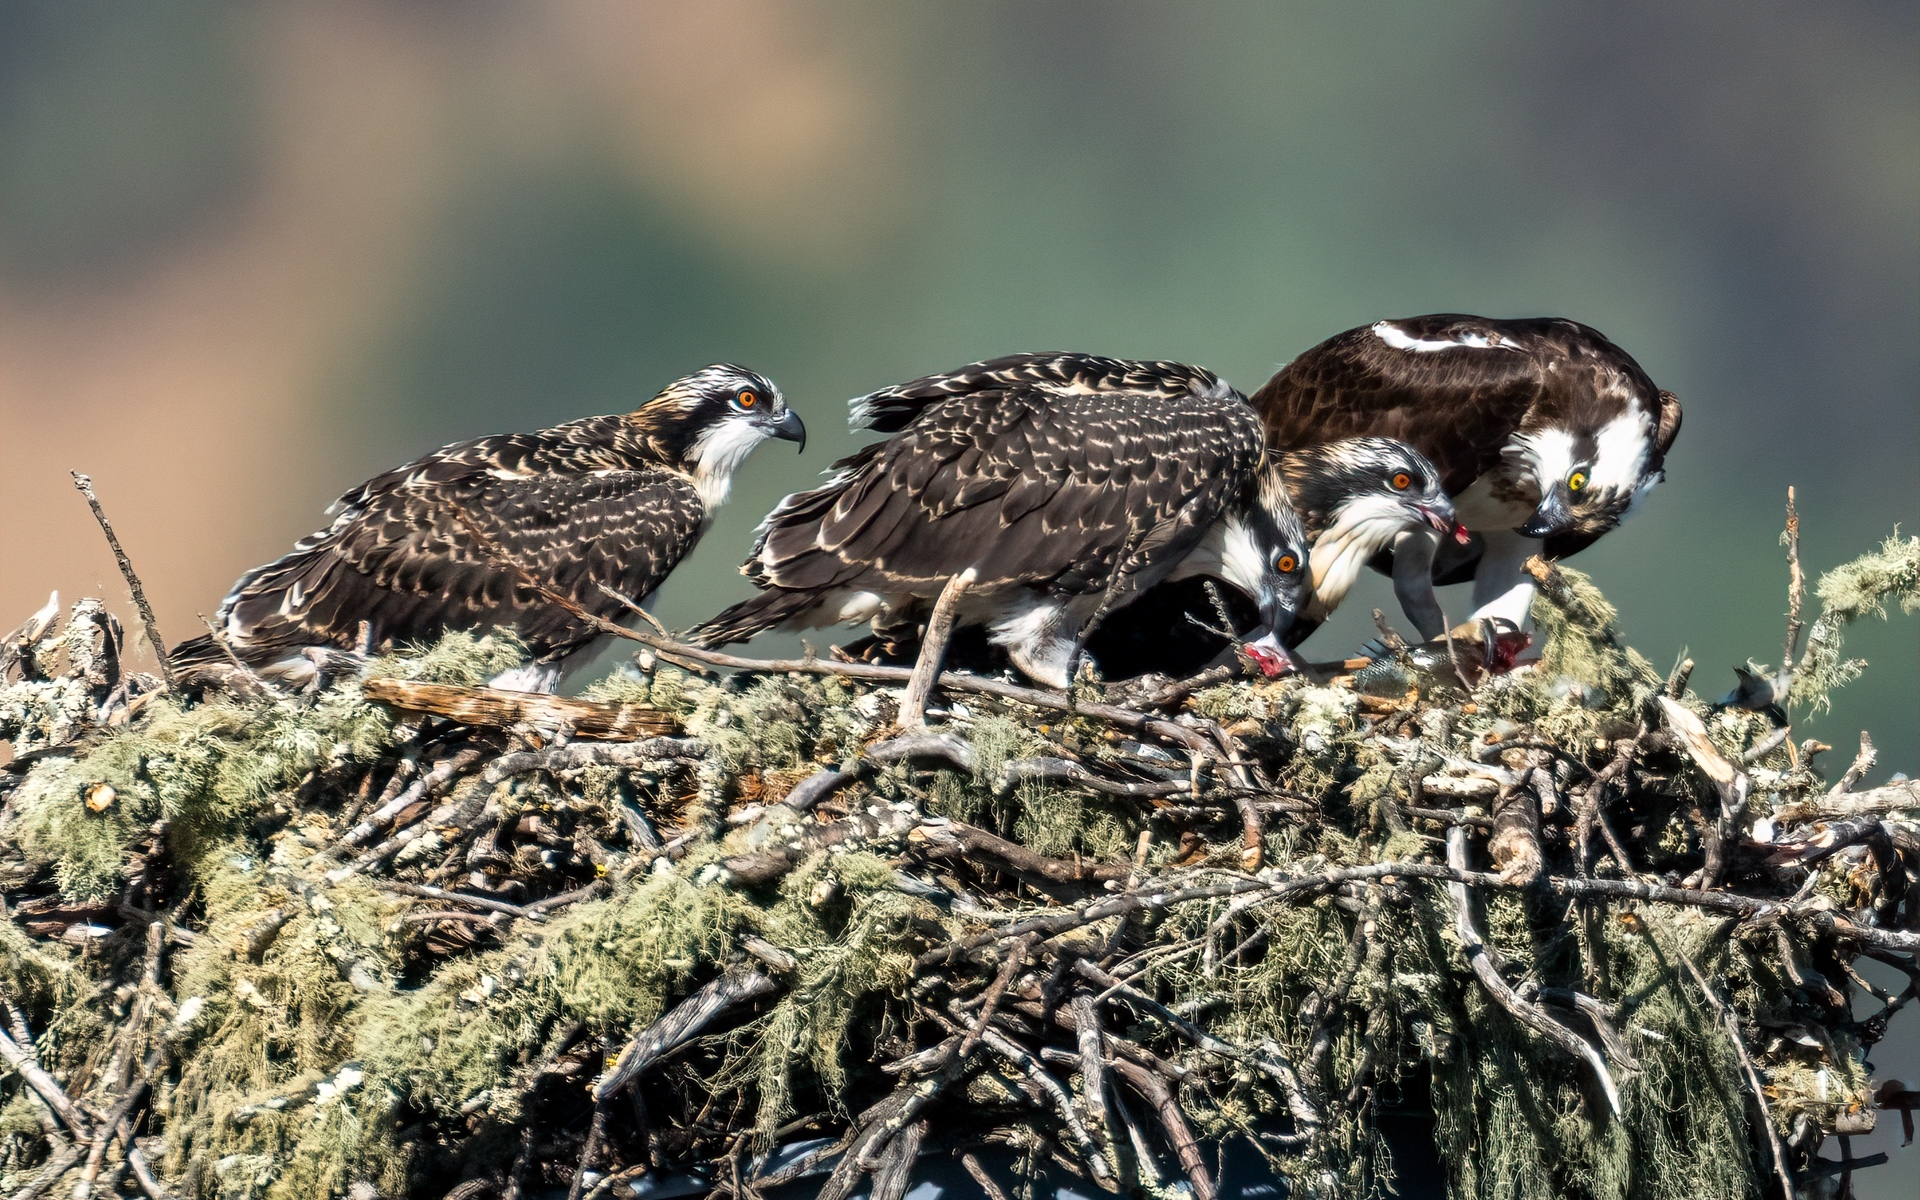 Osprey-Family-4-The-adult-female-teaches-the-fledglings-how-to-tear-off-bits-of-fish-as-she-feeds-one-NM-Place-by-Jerry-Meshulam-SR